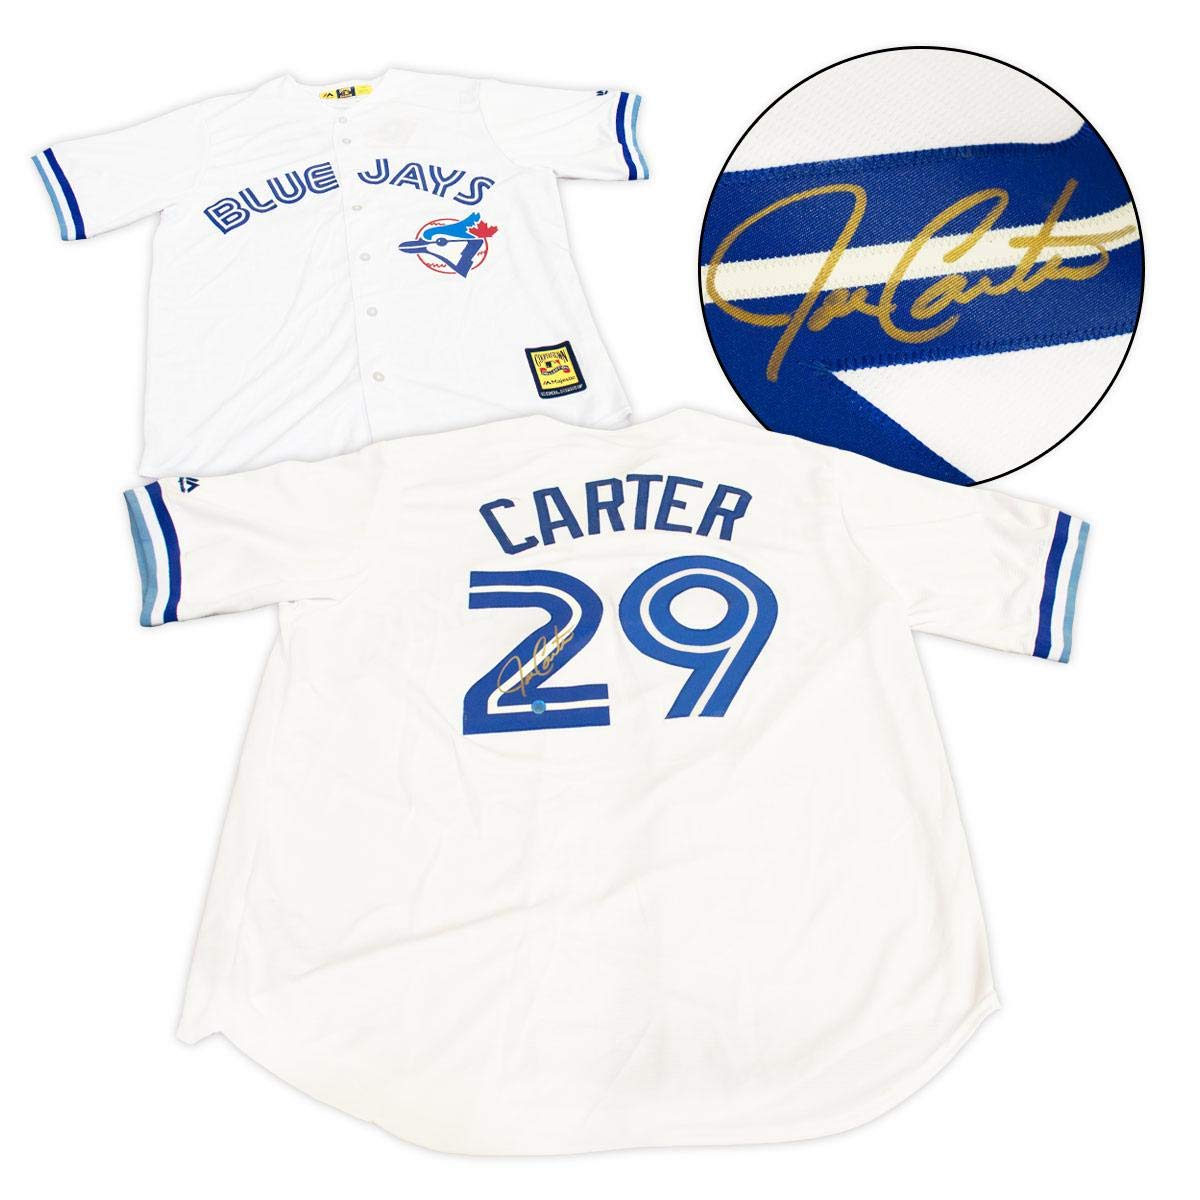 new styles c9b68 4a07b Joe Carter Autographed Jersey - 1993 Retro Cooperstown ...